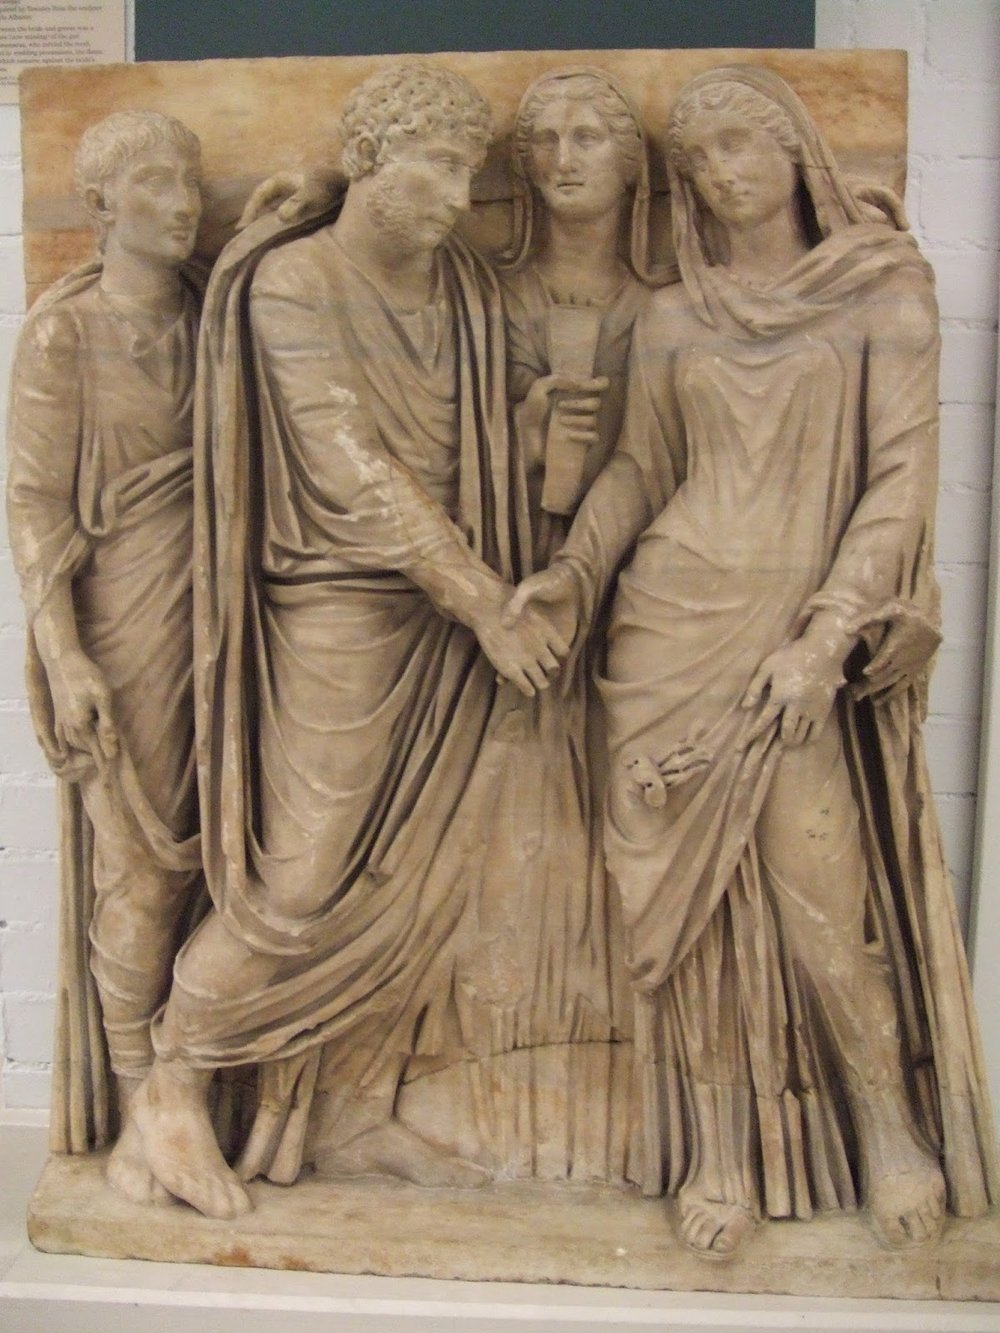 A relief at the British Museum portraying a Roman wedding. Photographed by Sarah Tarnopolsky.  Used under a Creative Commons license.